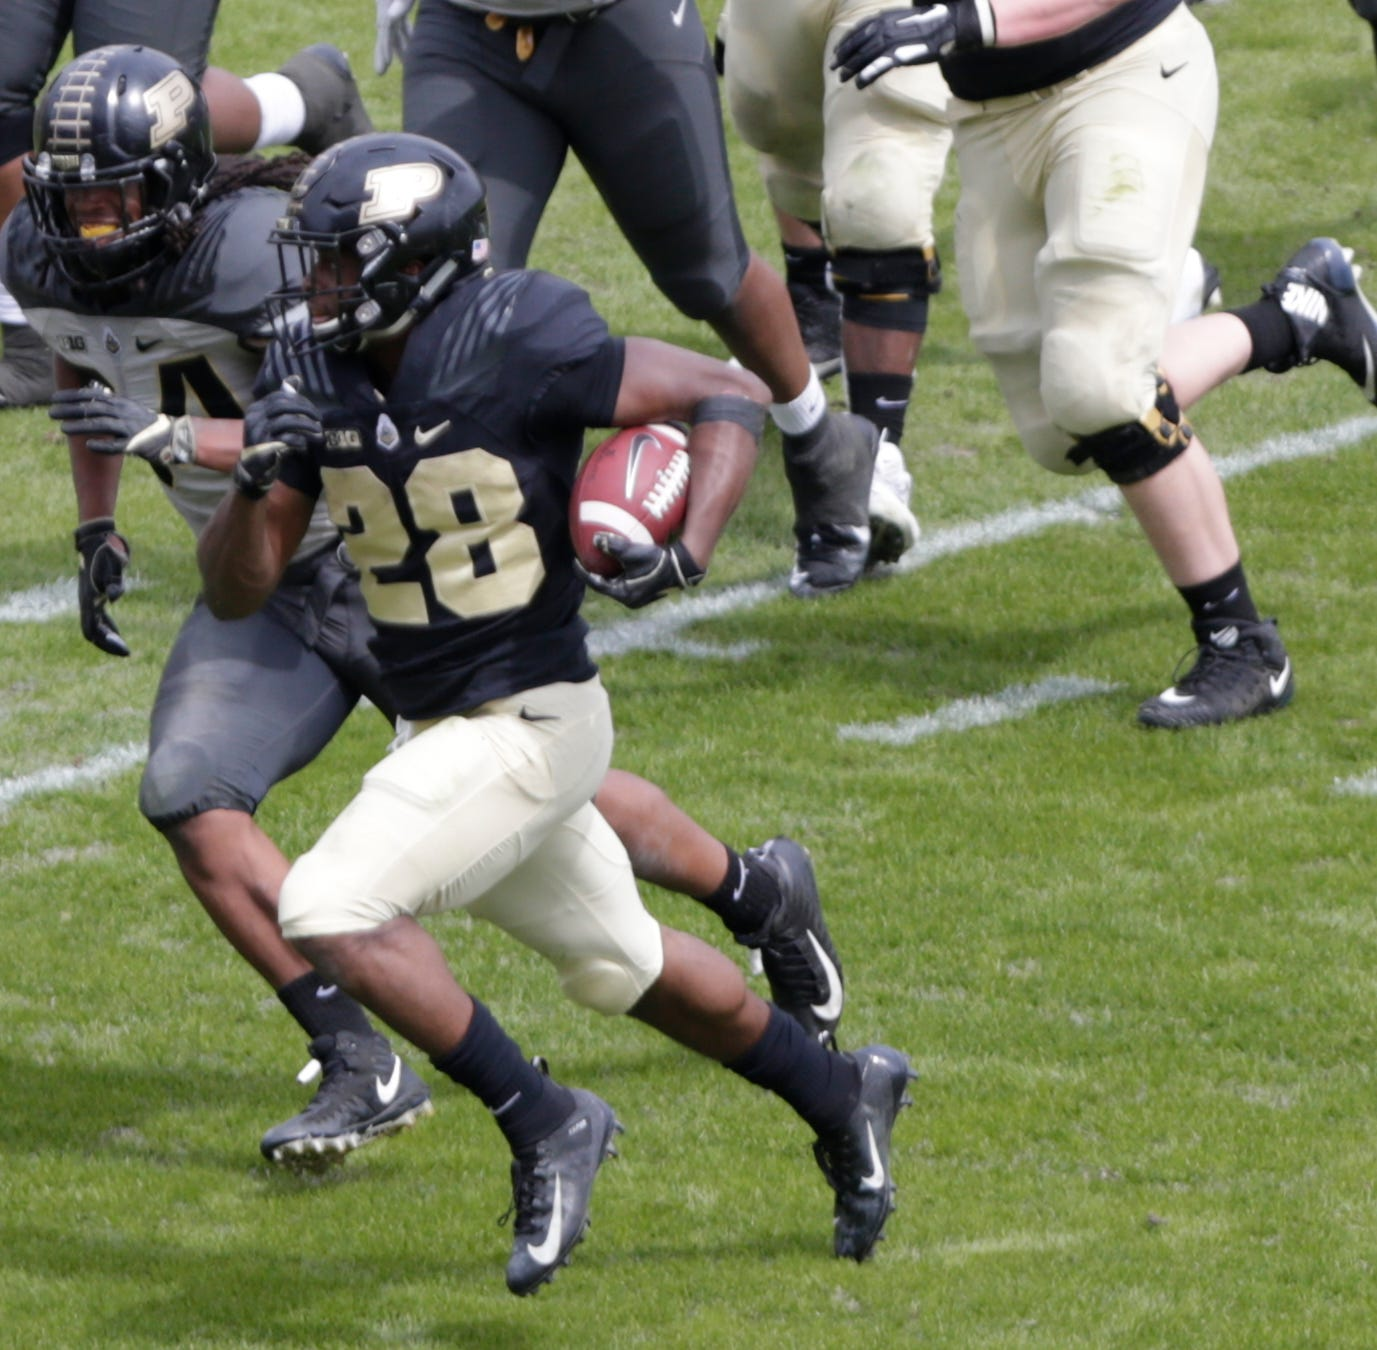 Purdue running back Evan Anderson leaves program